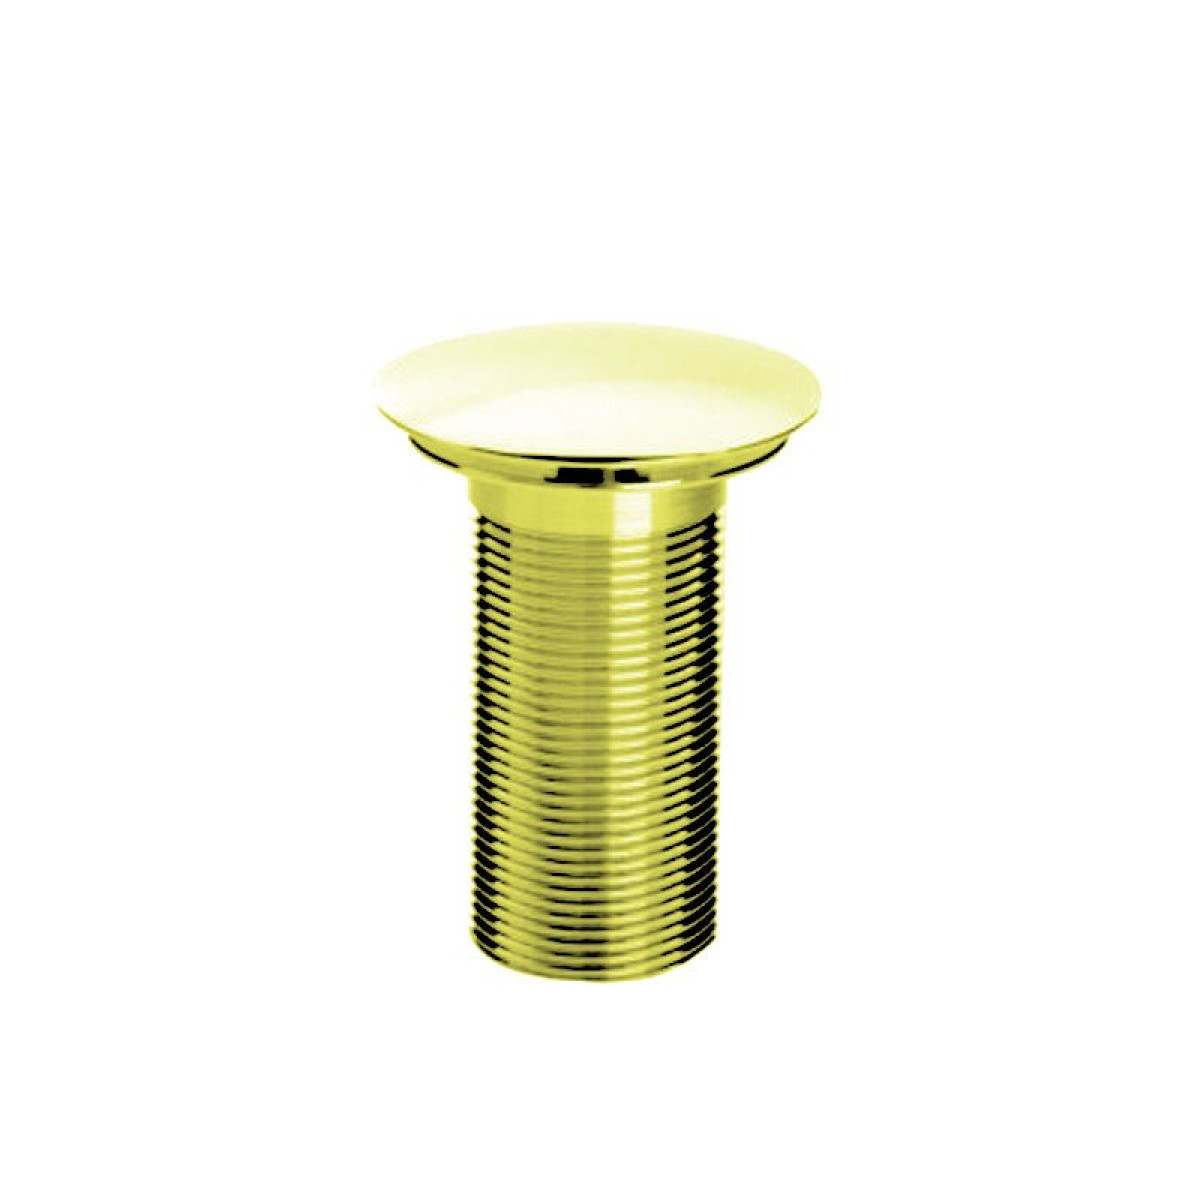 Bristan round clicker basin waste with clicker rd gold plated unslotted - Rd wastebasket ...